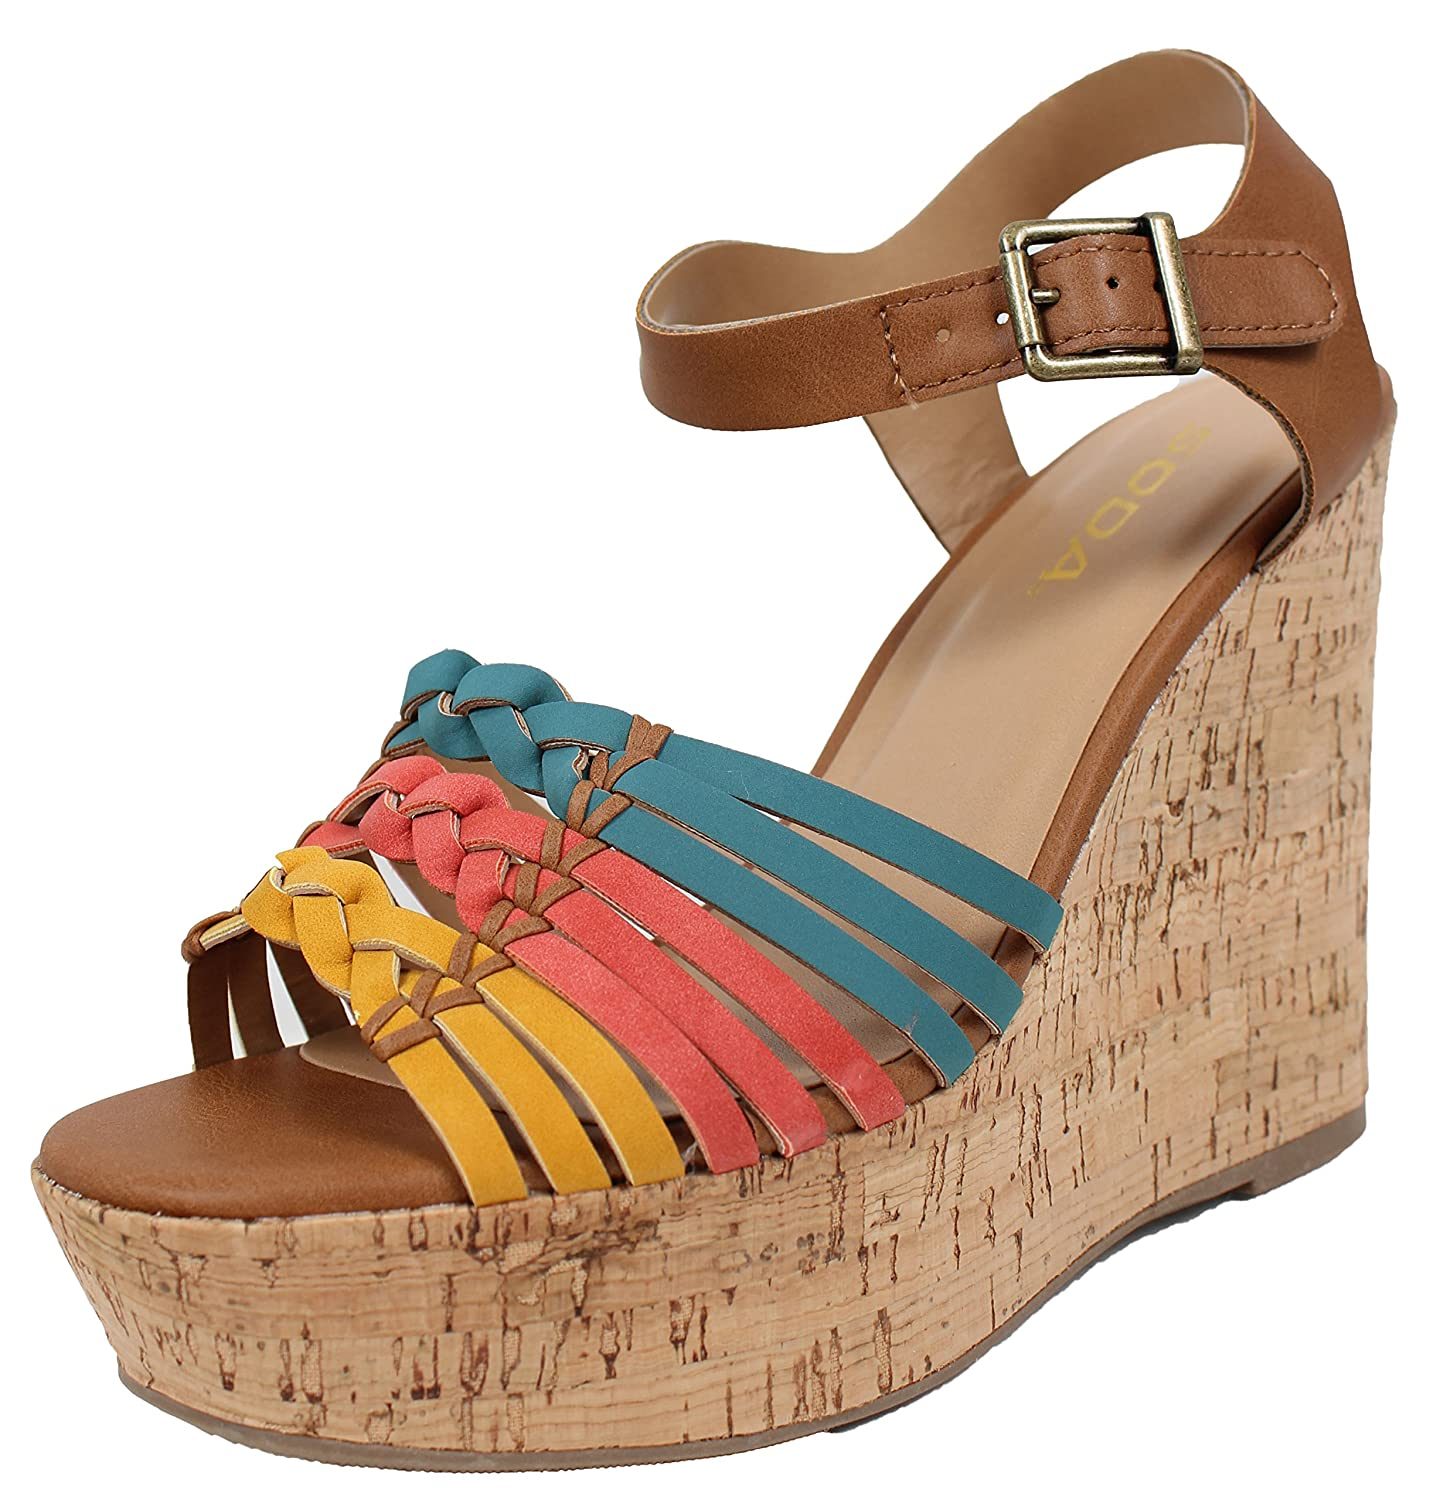 Soda Women's Open Toe Color Block Braided Strappy Cork Wedge Sandals